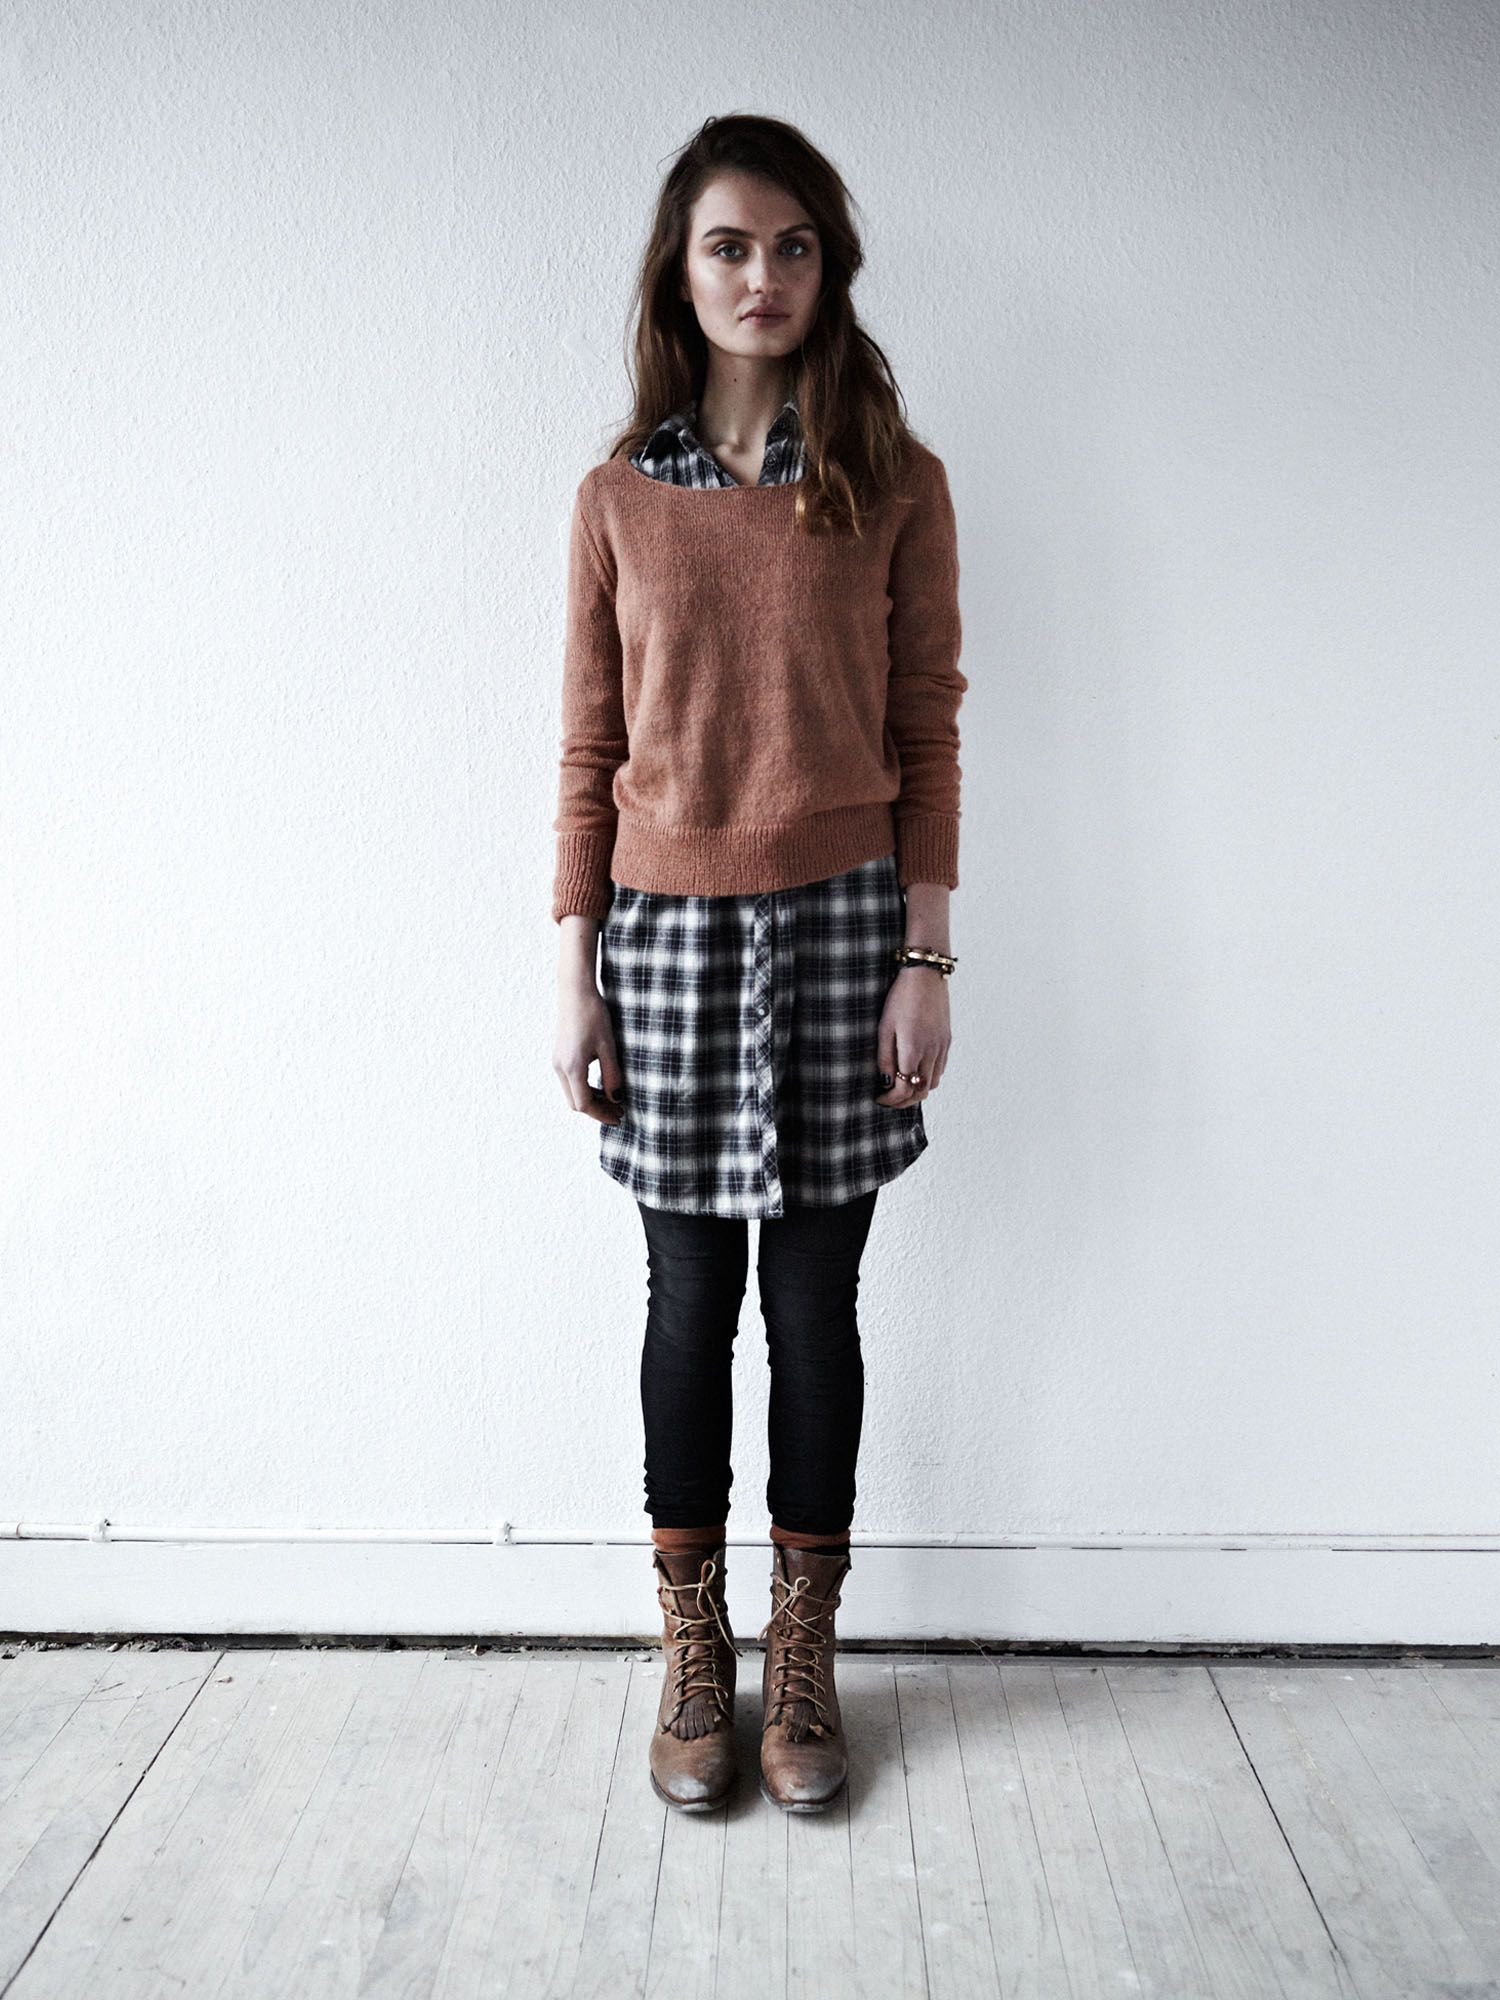 plaid dress shirt, sweater, black leggings, and brown lace-up boots